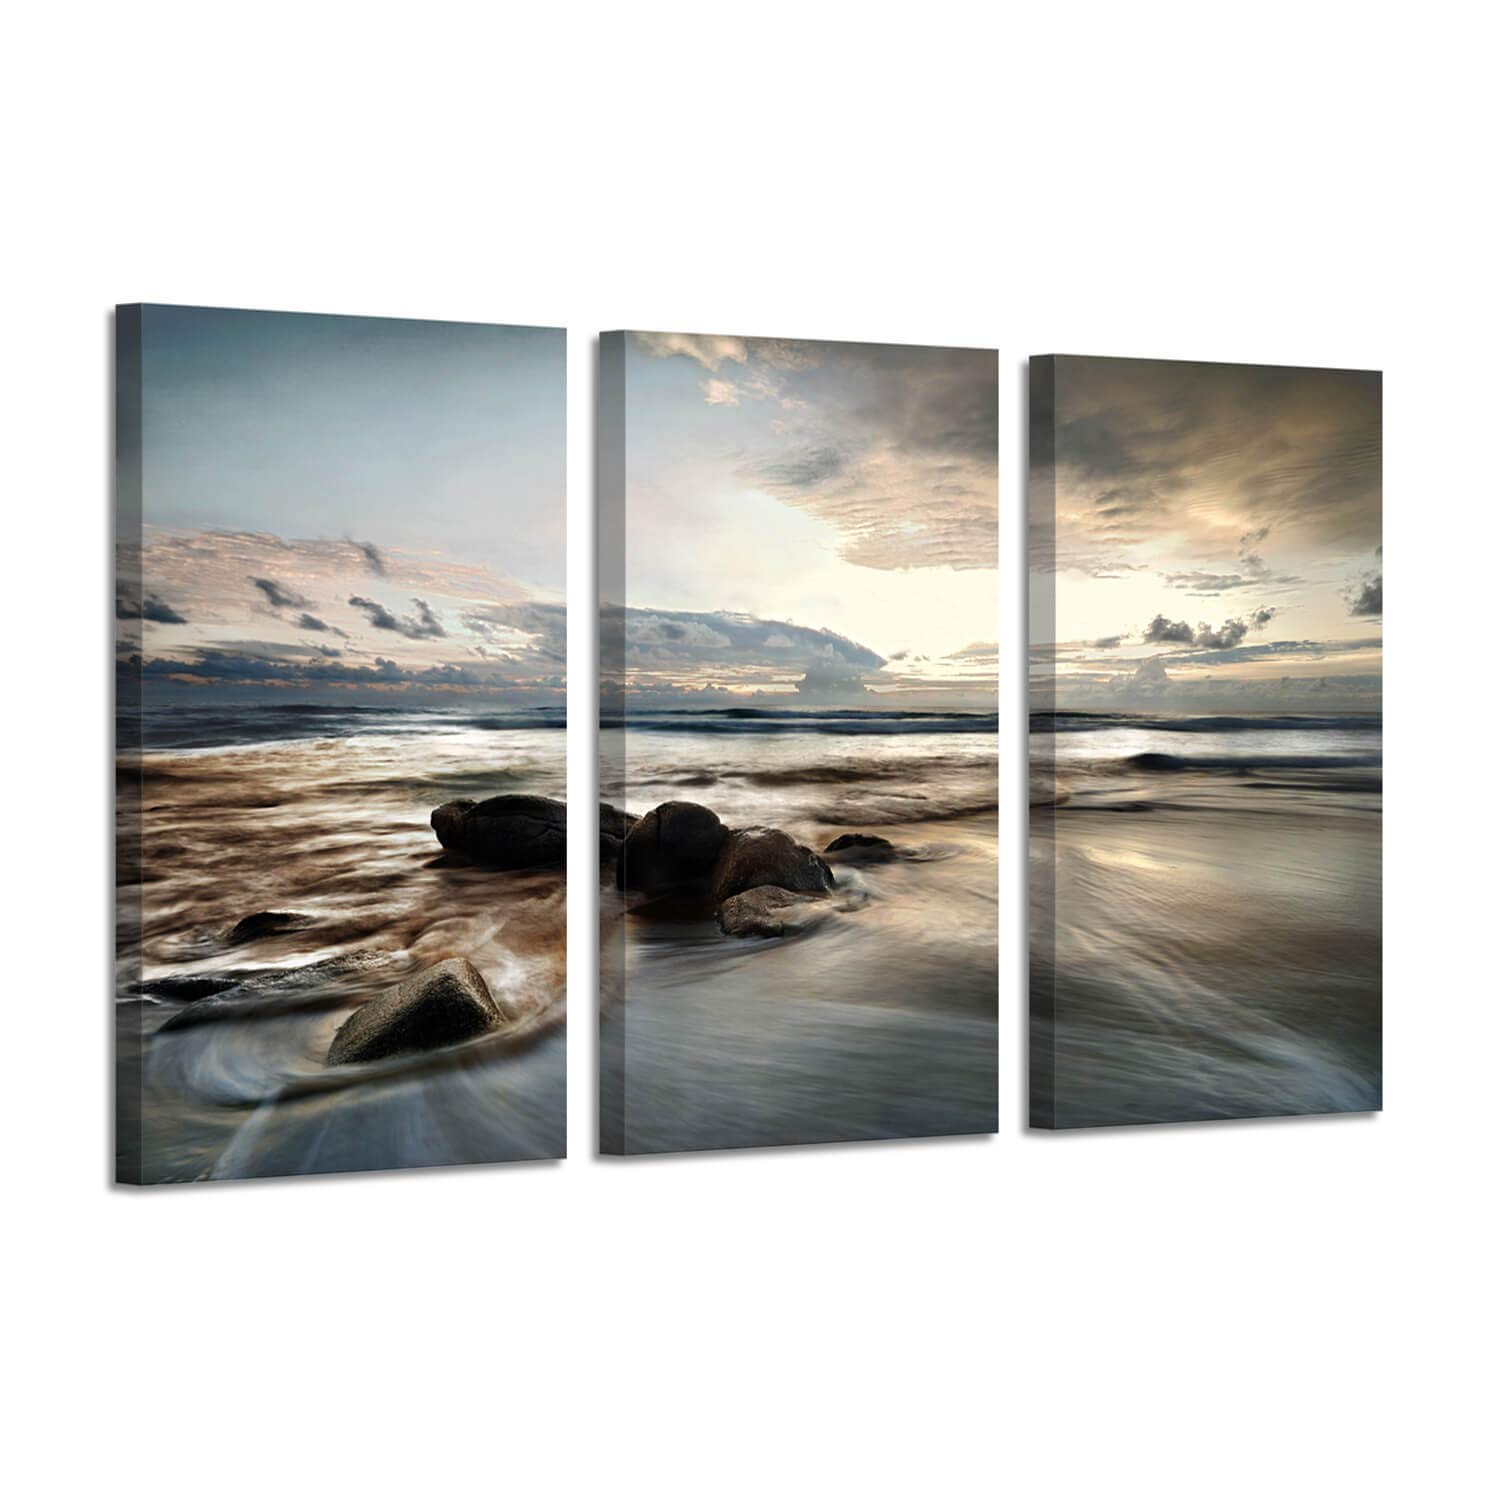 """Beach Canvas Art Wall Picture: Seascape Photographic Print on Canvas for Living Rooms(26""""x16""""x3 Panels)"""